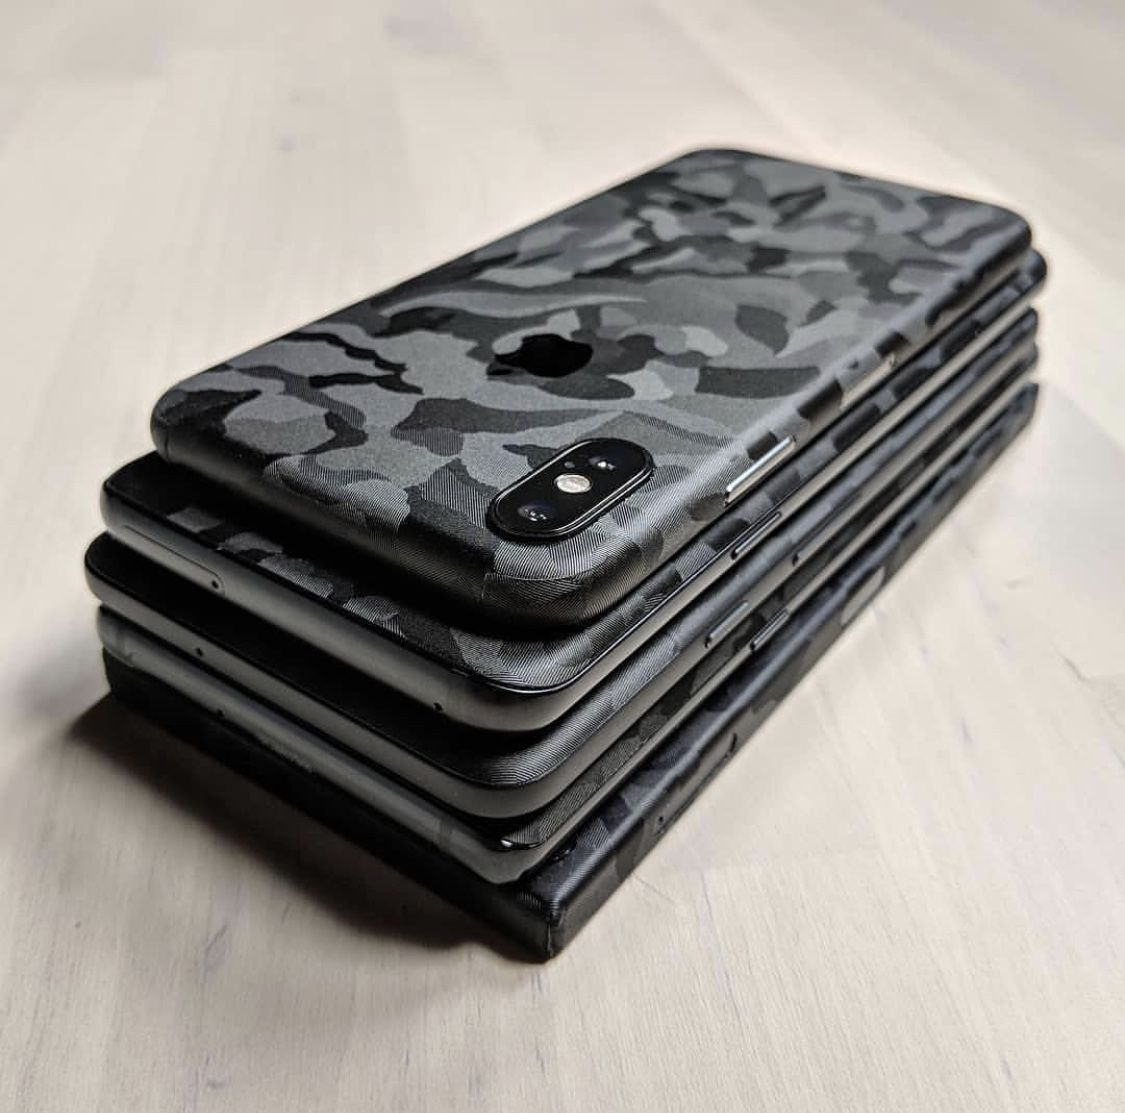 new styles 2ec95 a5fff iPhone X Camo Skin | iPhone X | Apple watch iphone, Iphone cases, Iphone